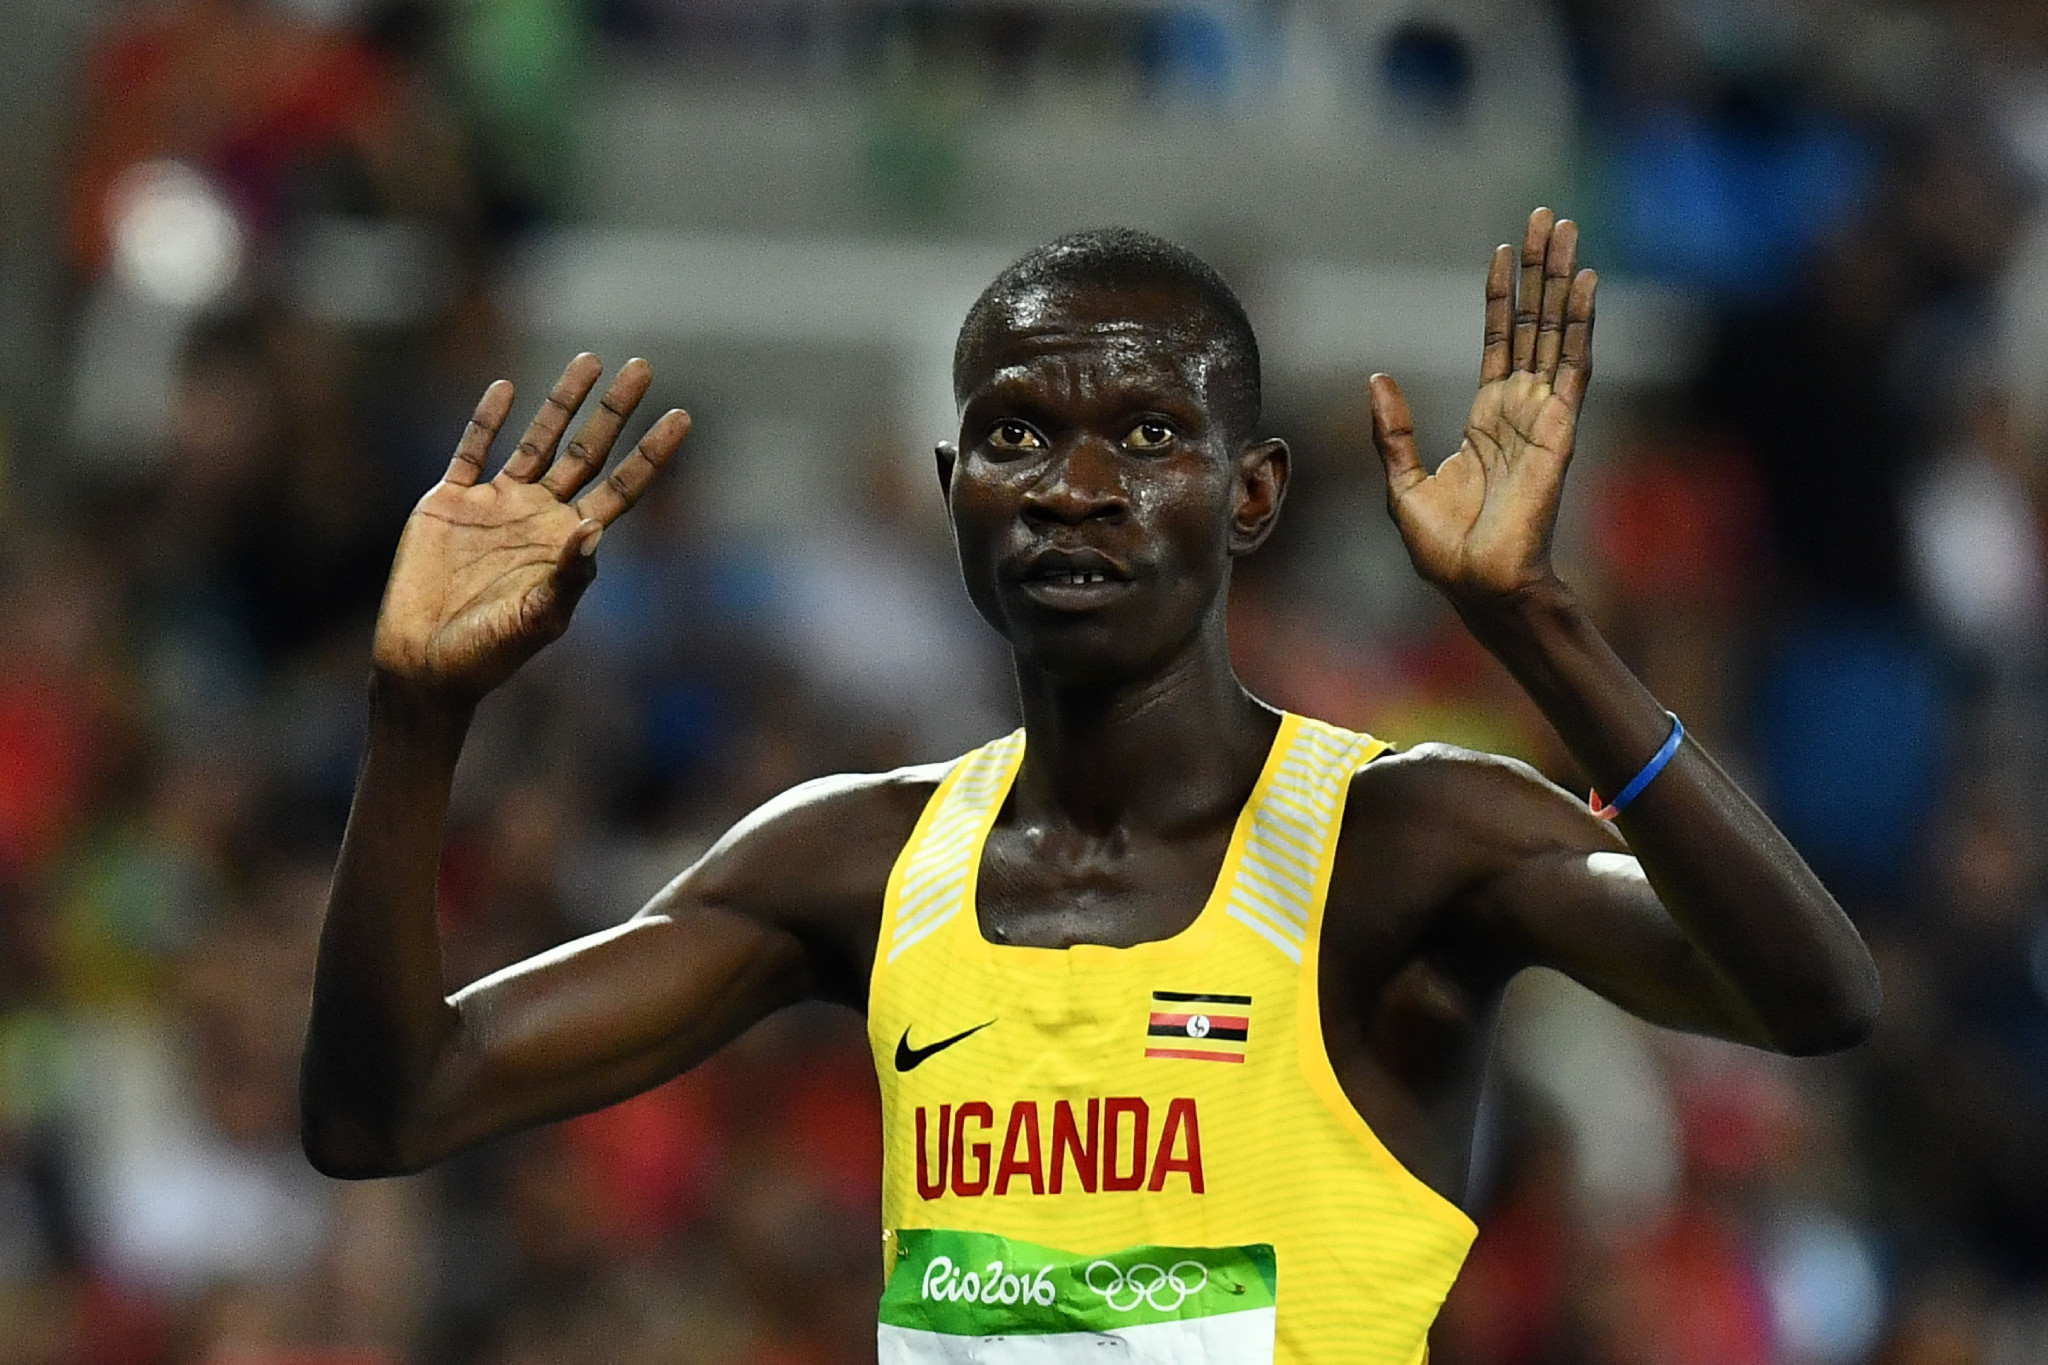 The aim of the project is to install Olympic values into Ugandan athletes from a young age ©Getty Images